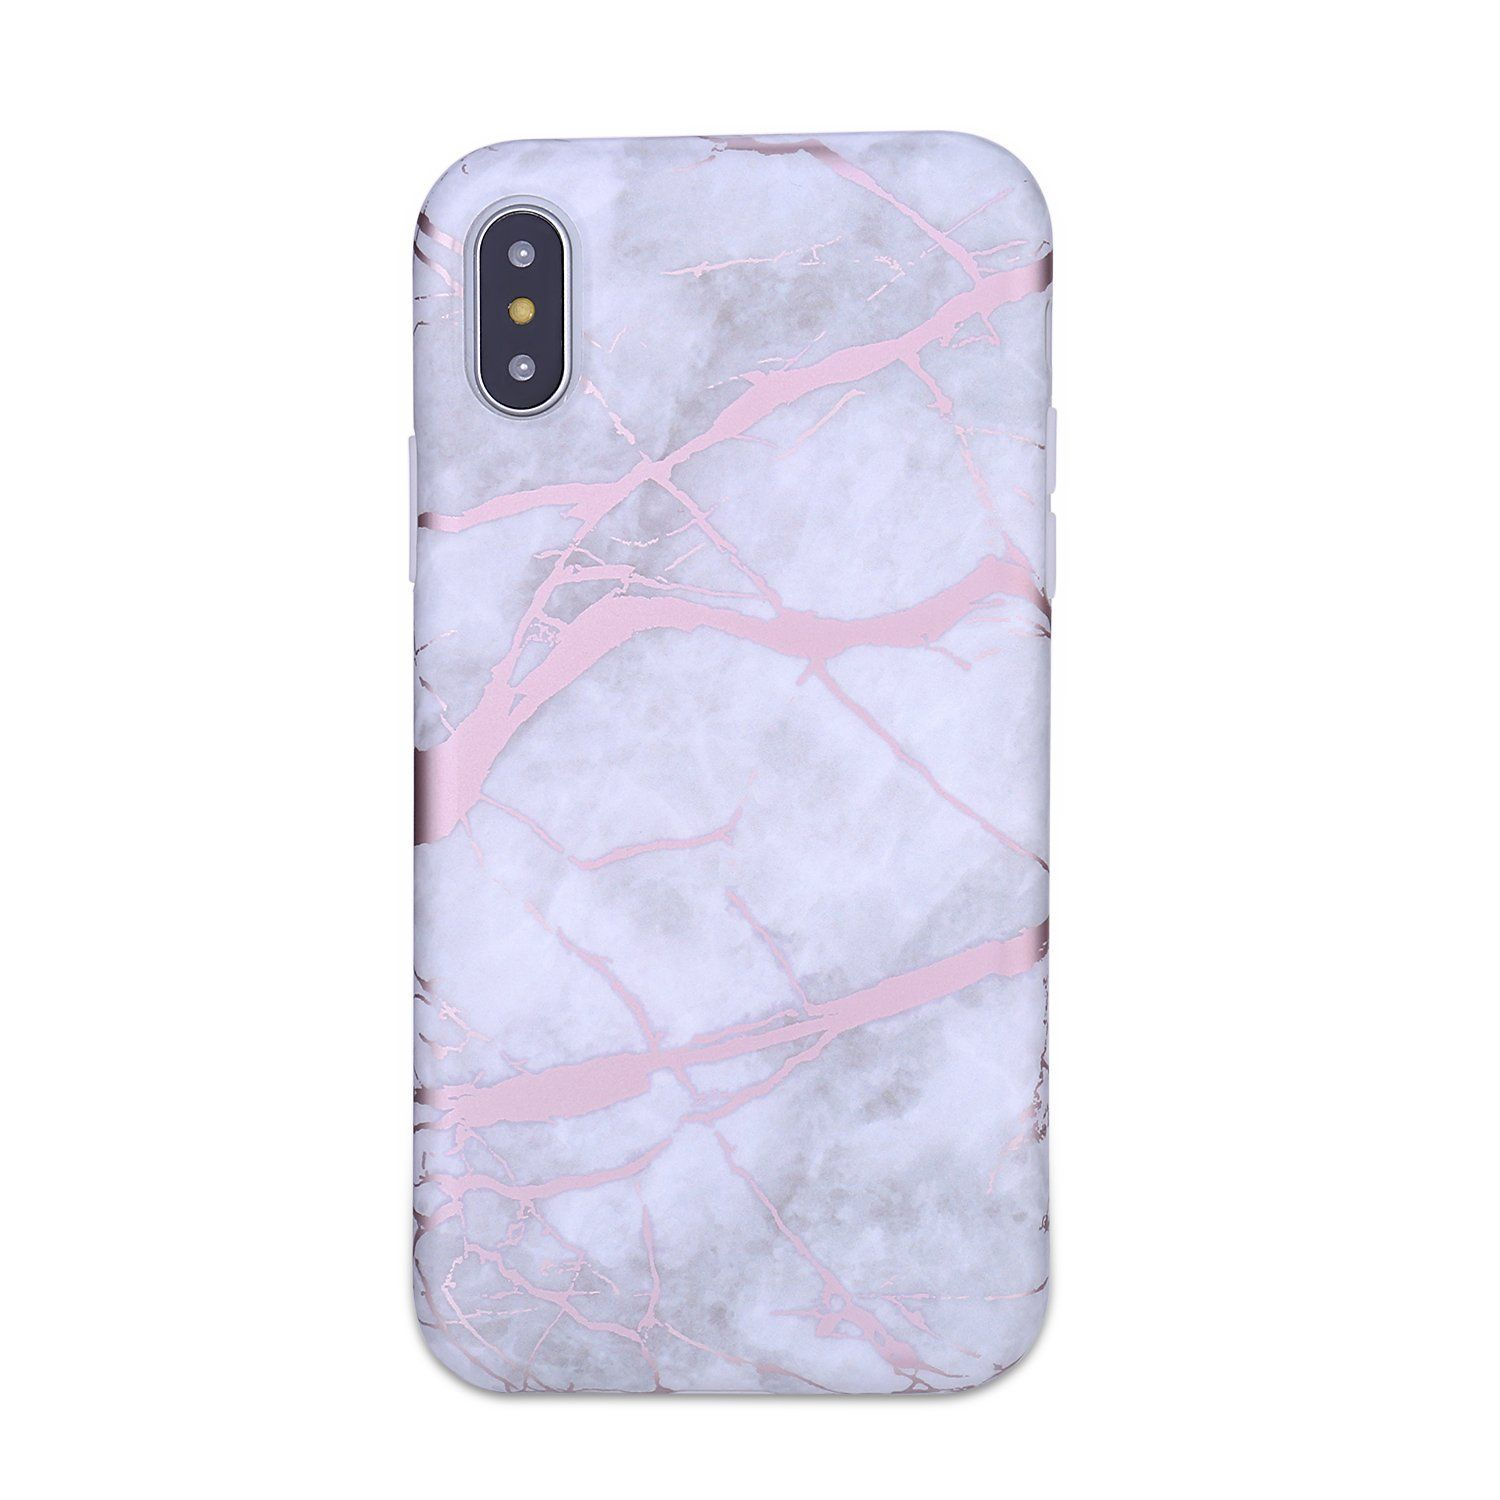 Iphone X Case Iphone X Marble Case Manleno Chrome Rose Gold Full Matte Flexible Tpu Rubber Silicone C Glitter Phone Cases Phone Cases Protective Iphone Cases